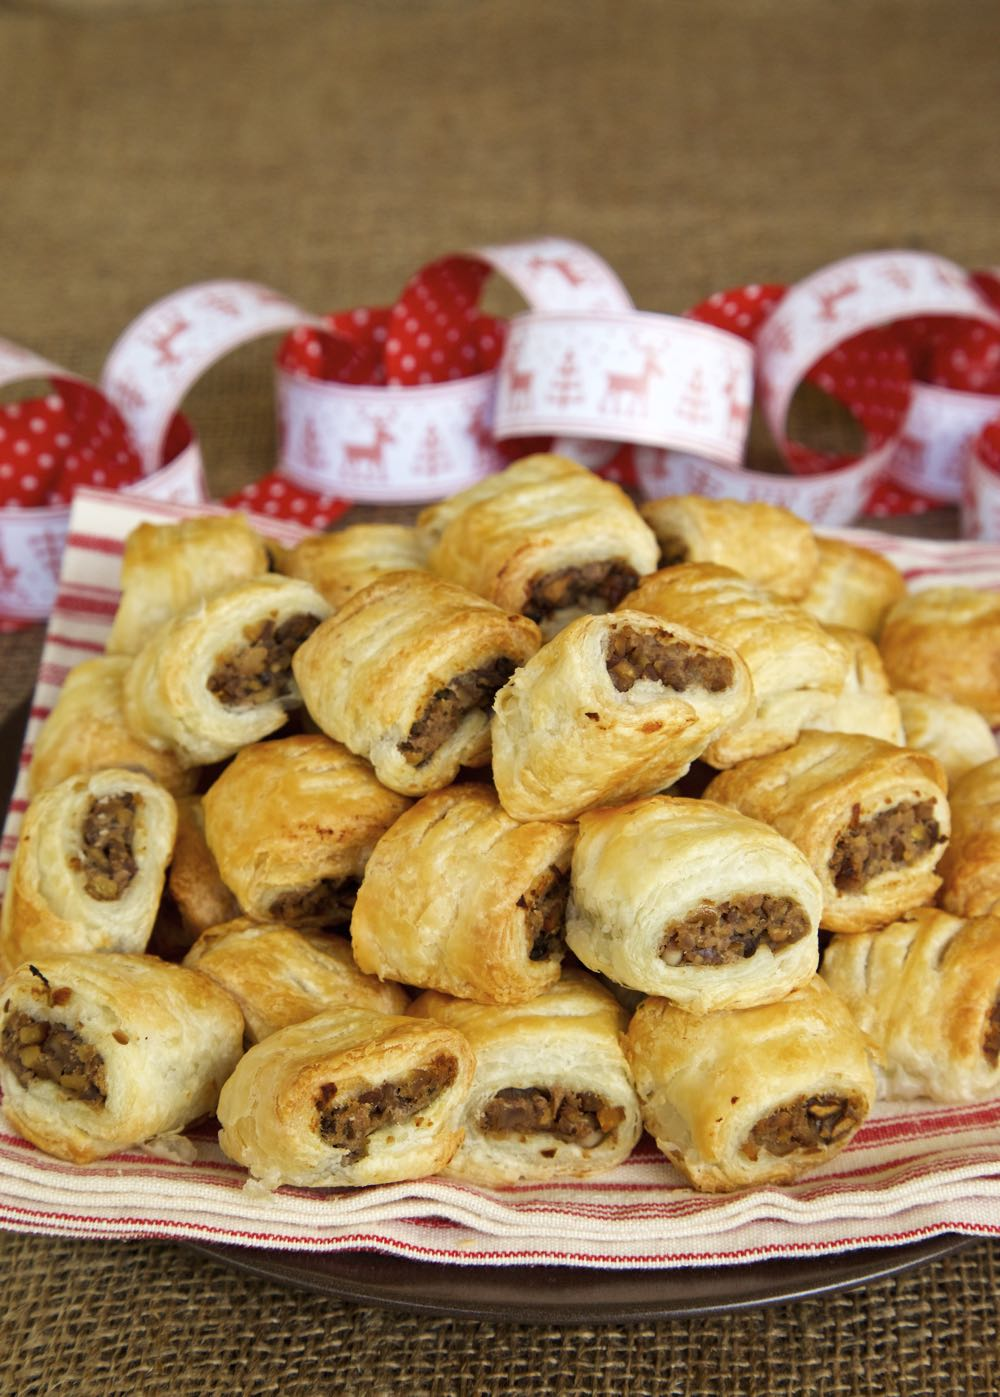 The best Vegan Sausage Rolls - chestnut, mushroom and red wine encased in crispy, flaky, puff pastry!